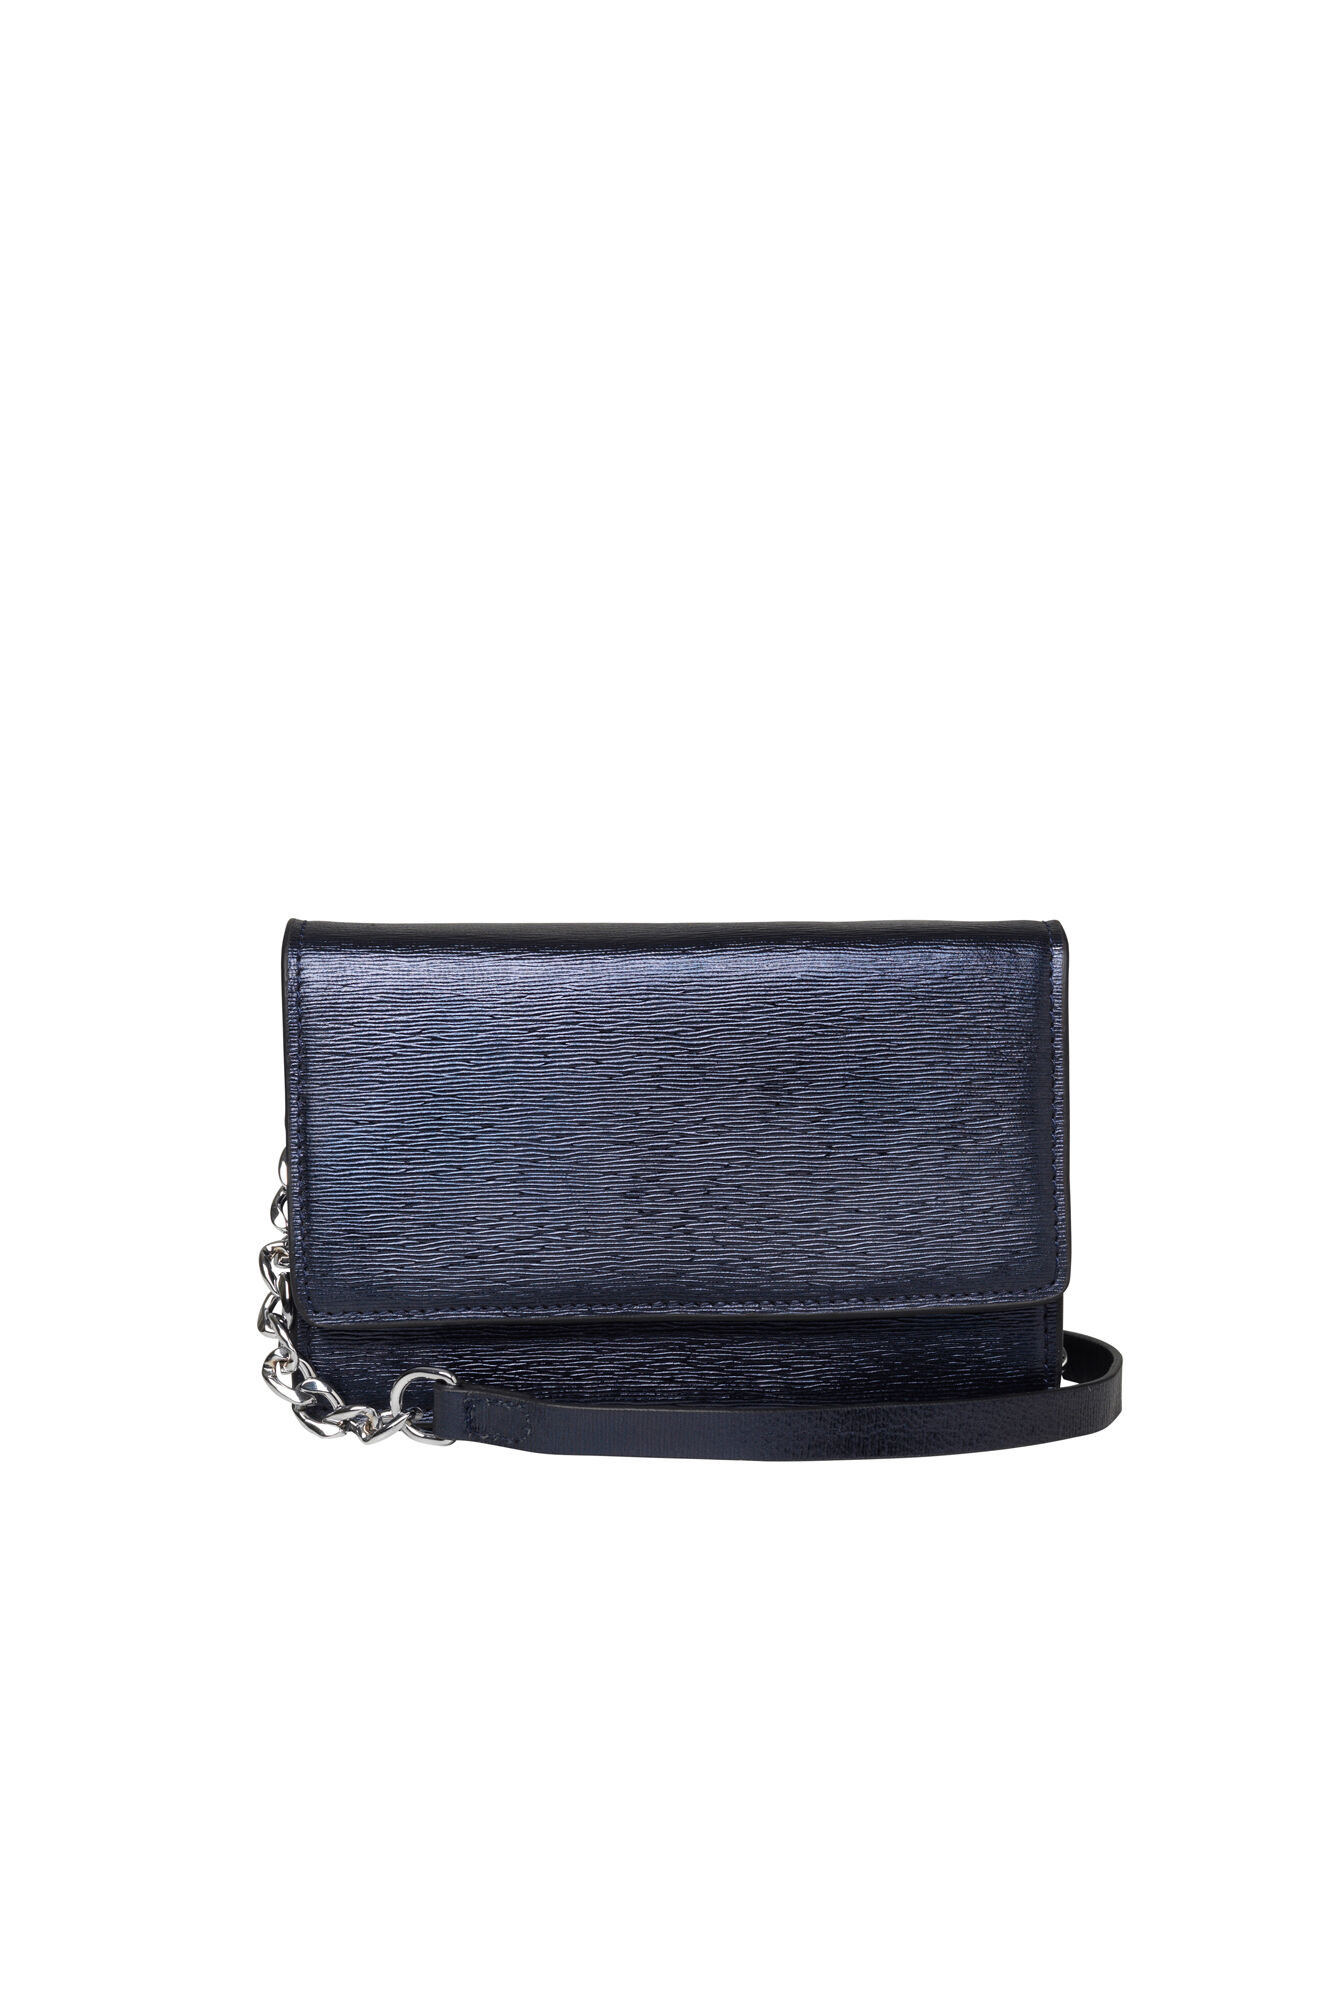 Elodie bag 9610, DEEP WELL